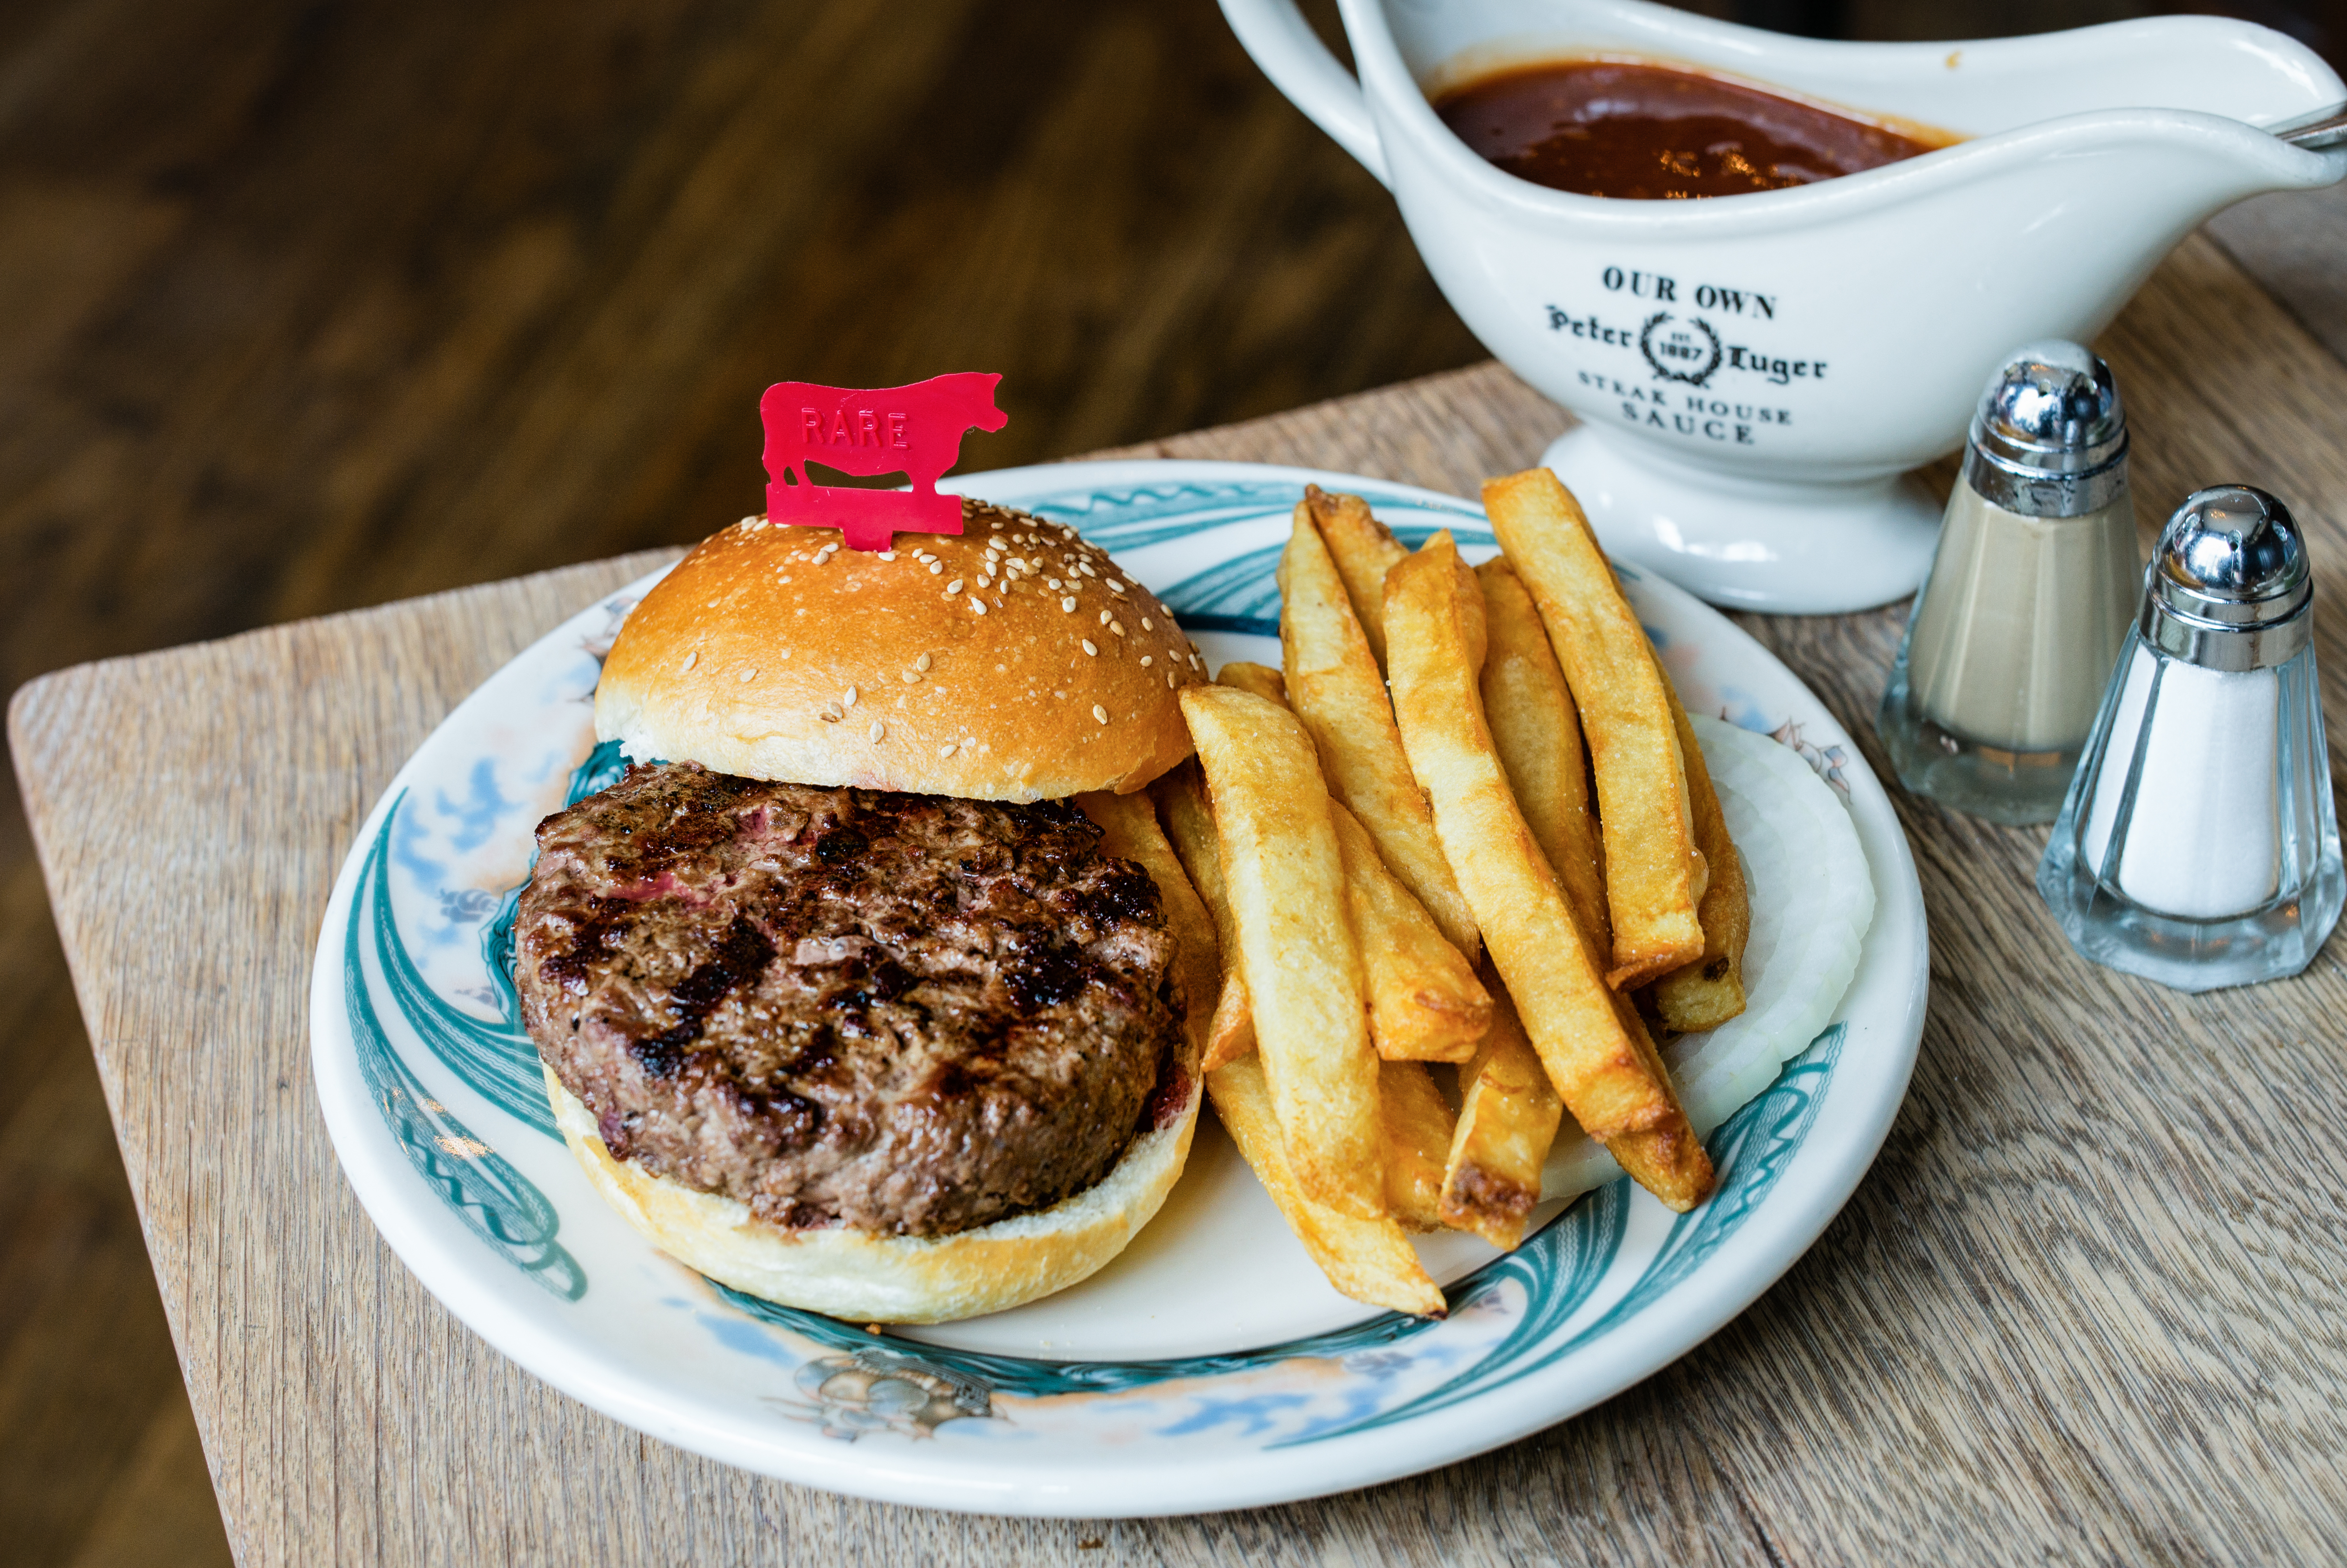 The burger at Peter Lugers Steakhouse, New York City